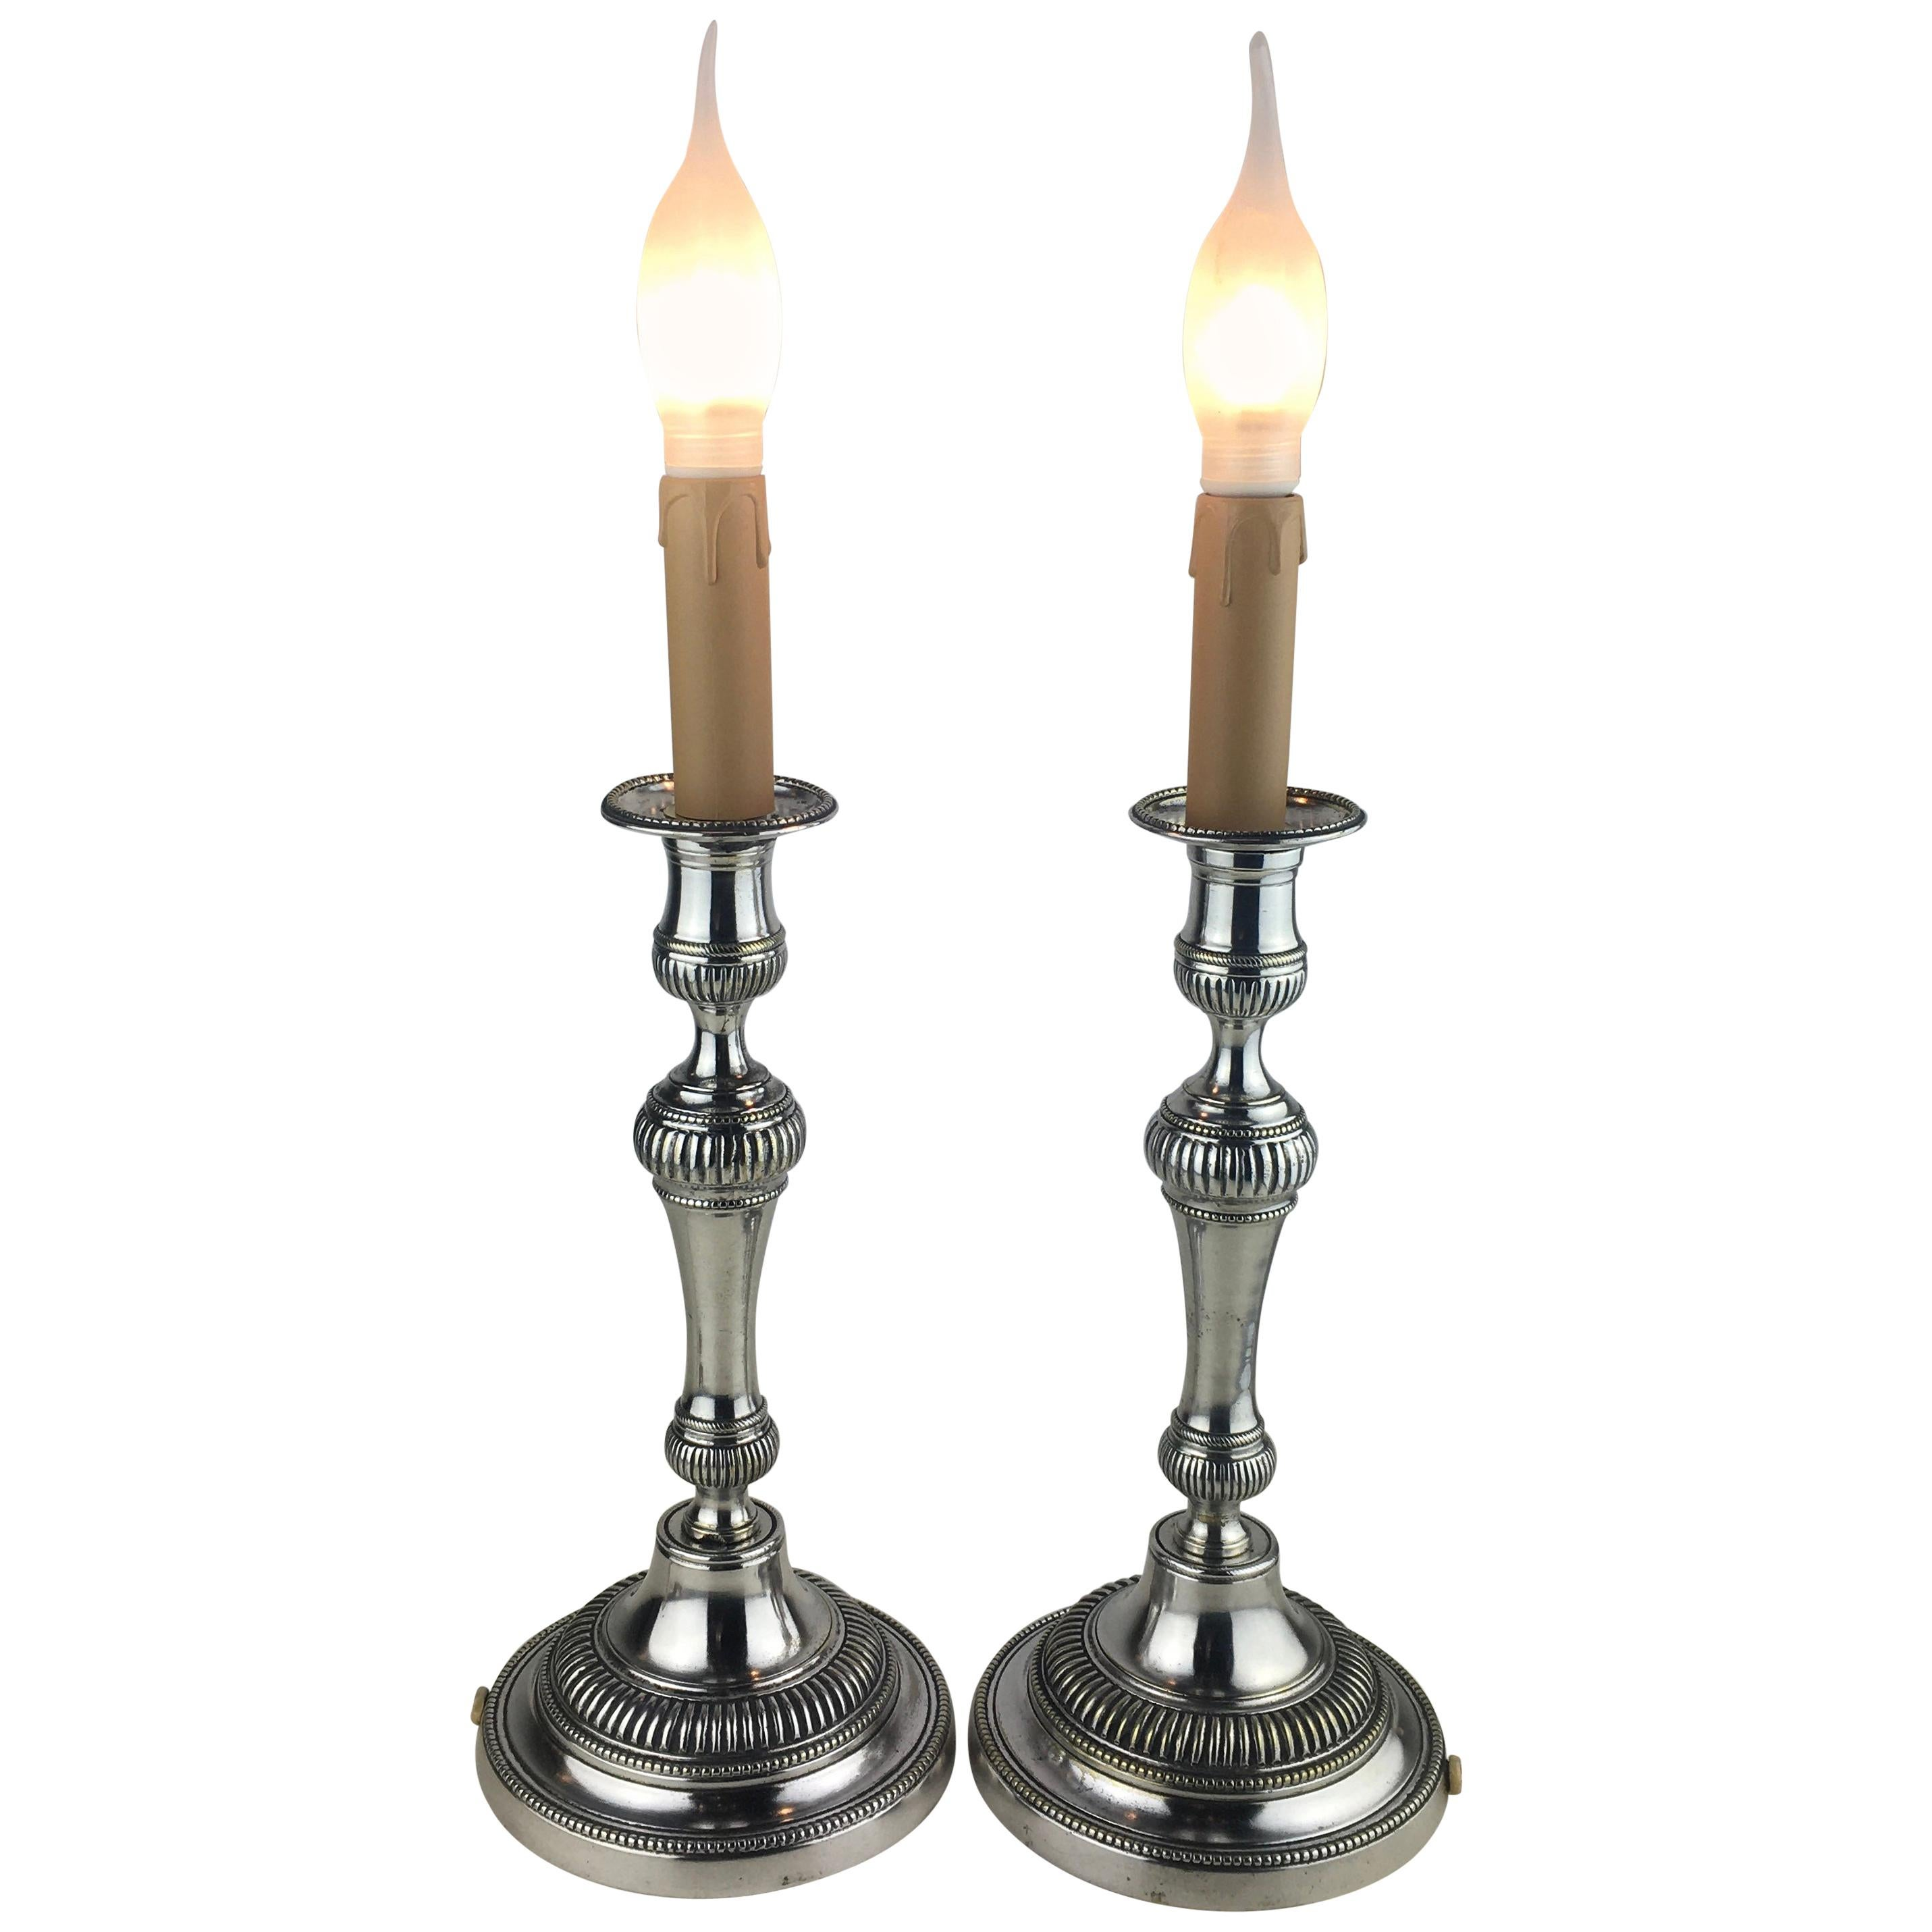 Pair of French Louis XVI Style Silver Plated Electrified Candlestick Table Lamps